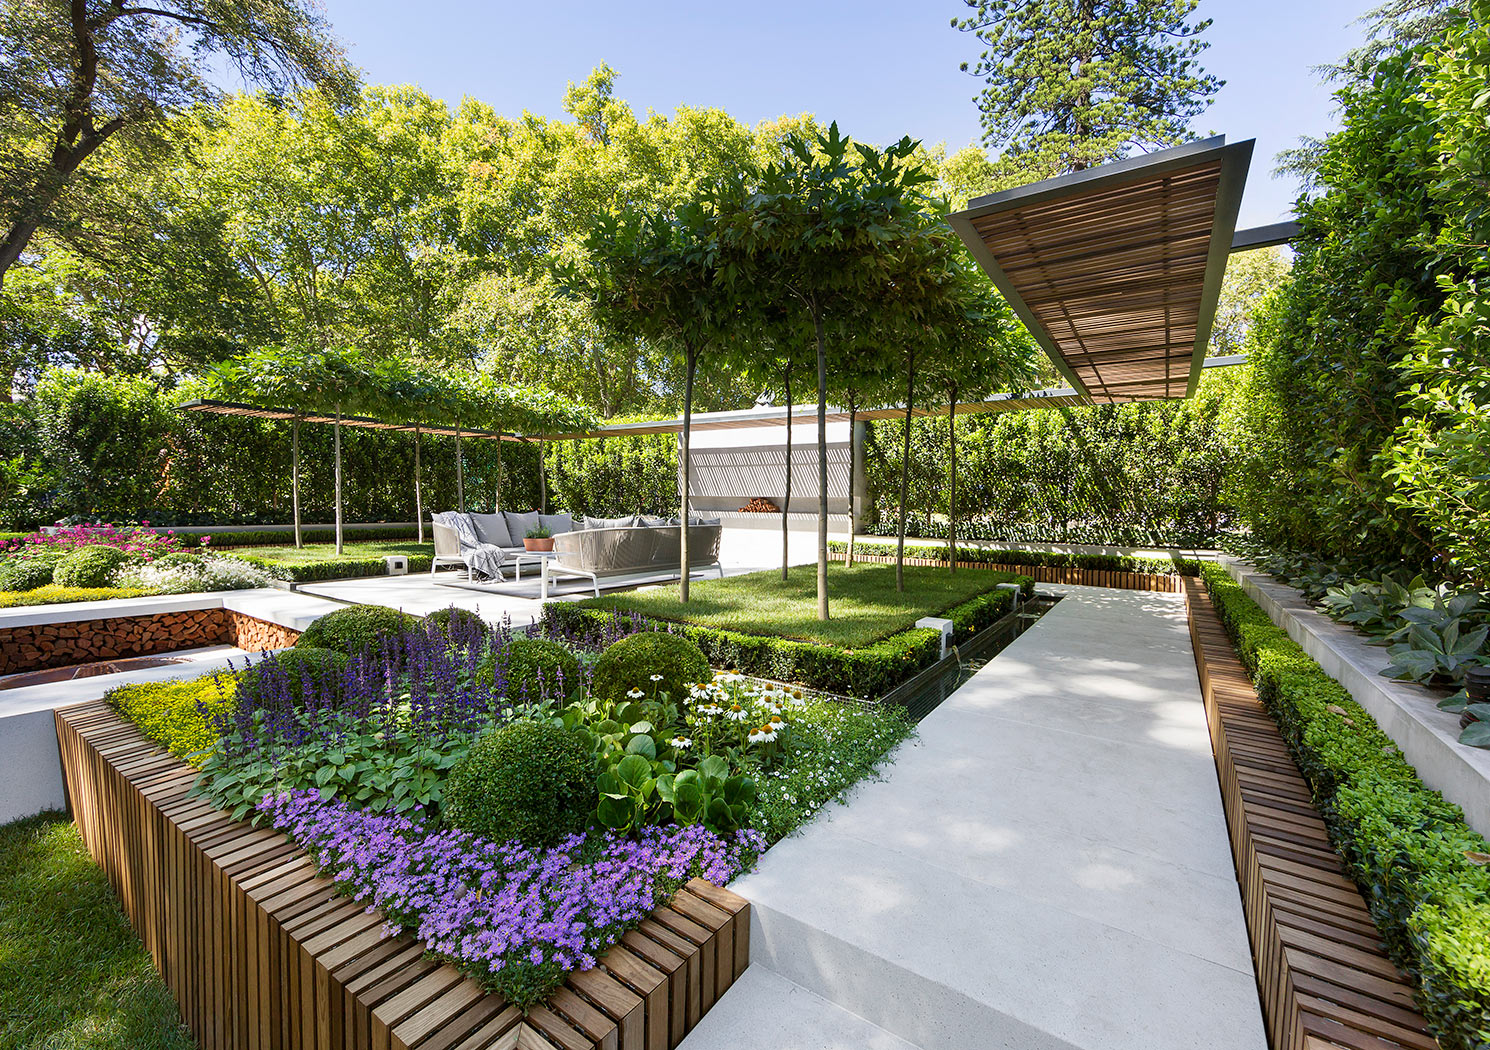 Landscape design melbourne nathan burkett design for Outdoor garden designs